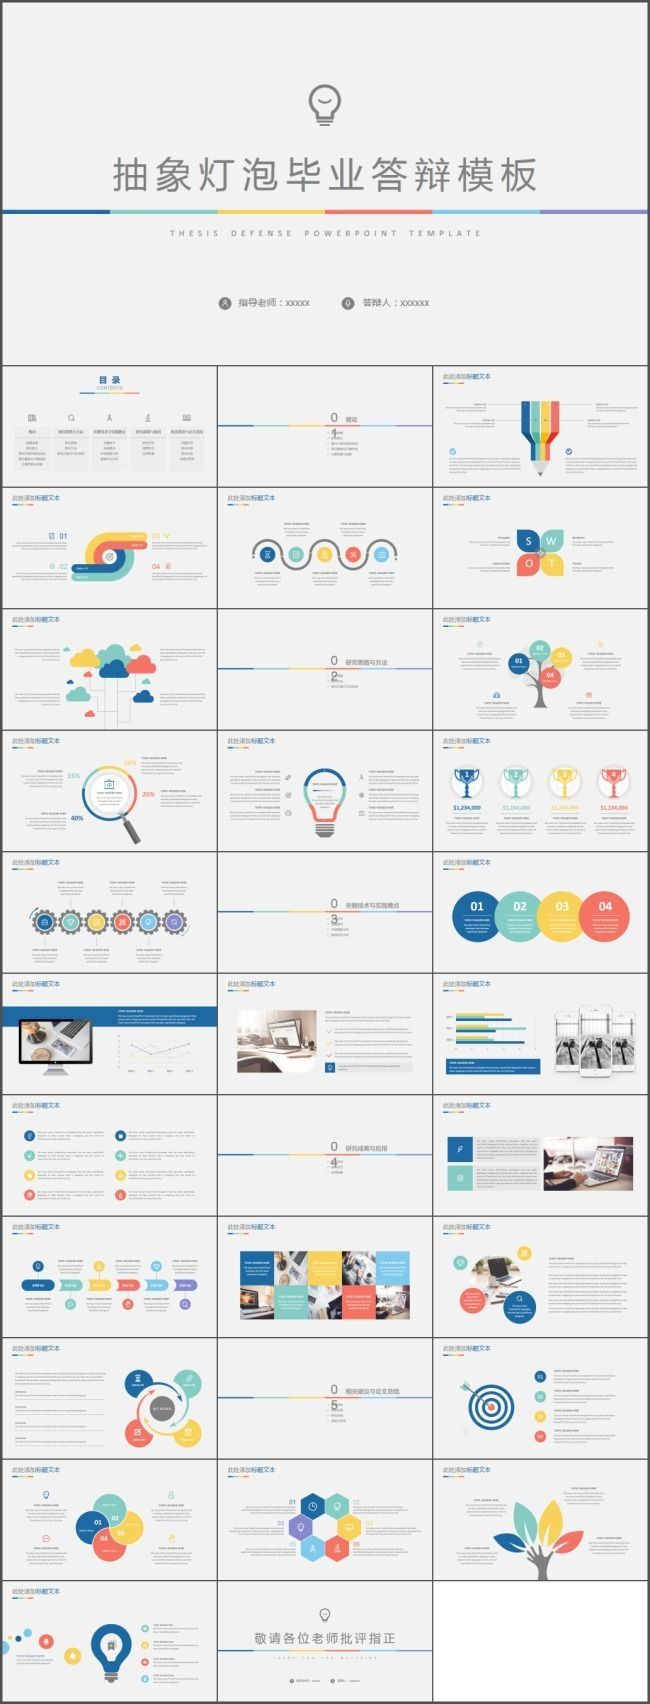 Light bulb analysis thesis defense ppt template download for free light bulb analysis thesis defense ppt template download for free on heypik heypik powepoint office education school project plan spe toneelgroepblik Choice Image